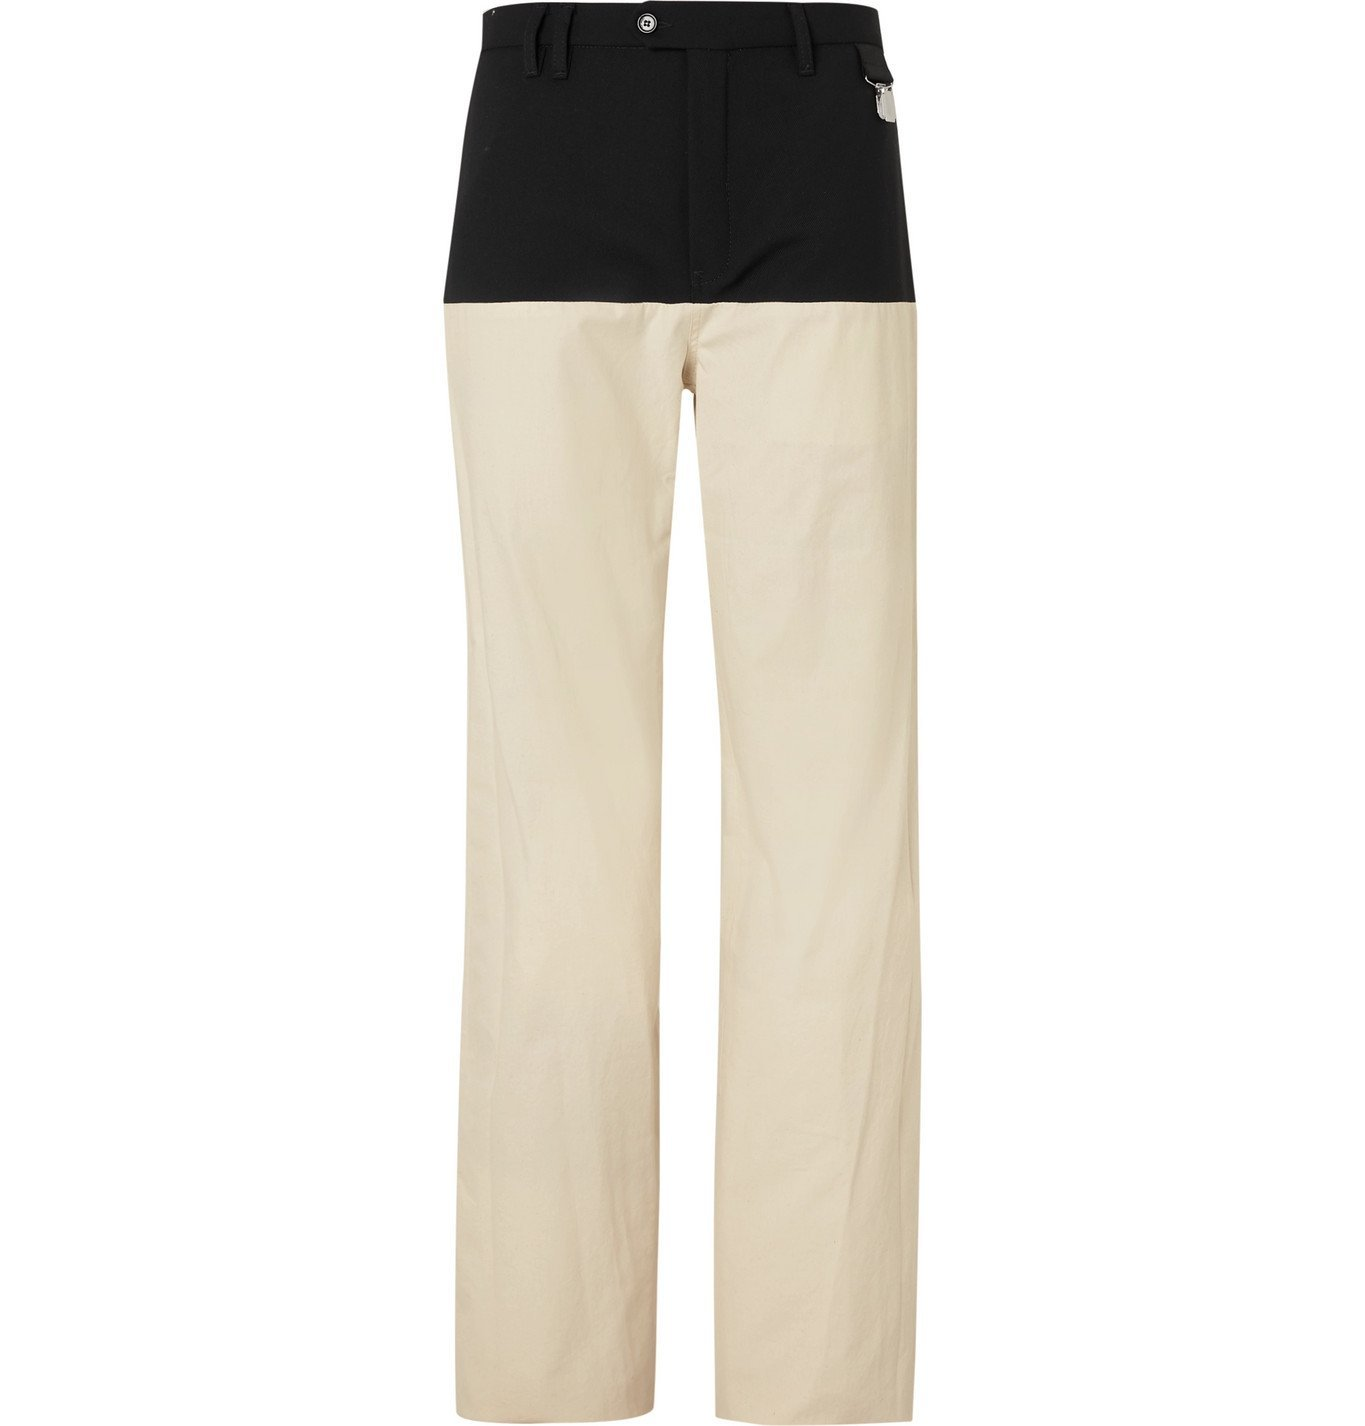 Raf Simons - Wool Twill-Panelled Cotton Trousers - Neutrals